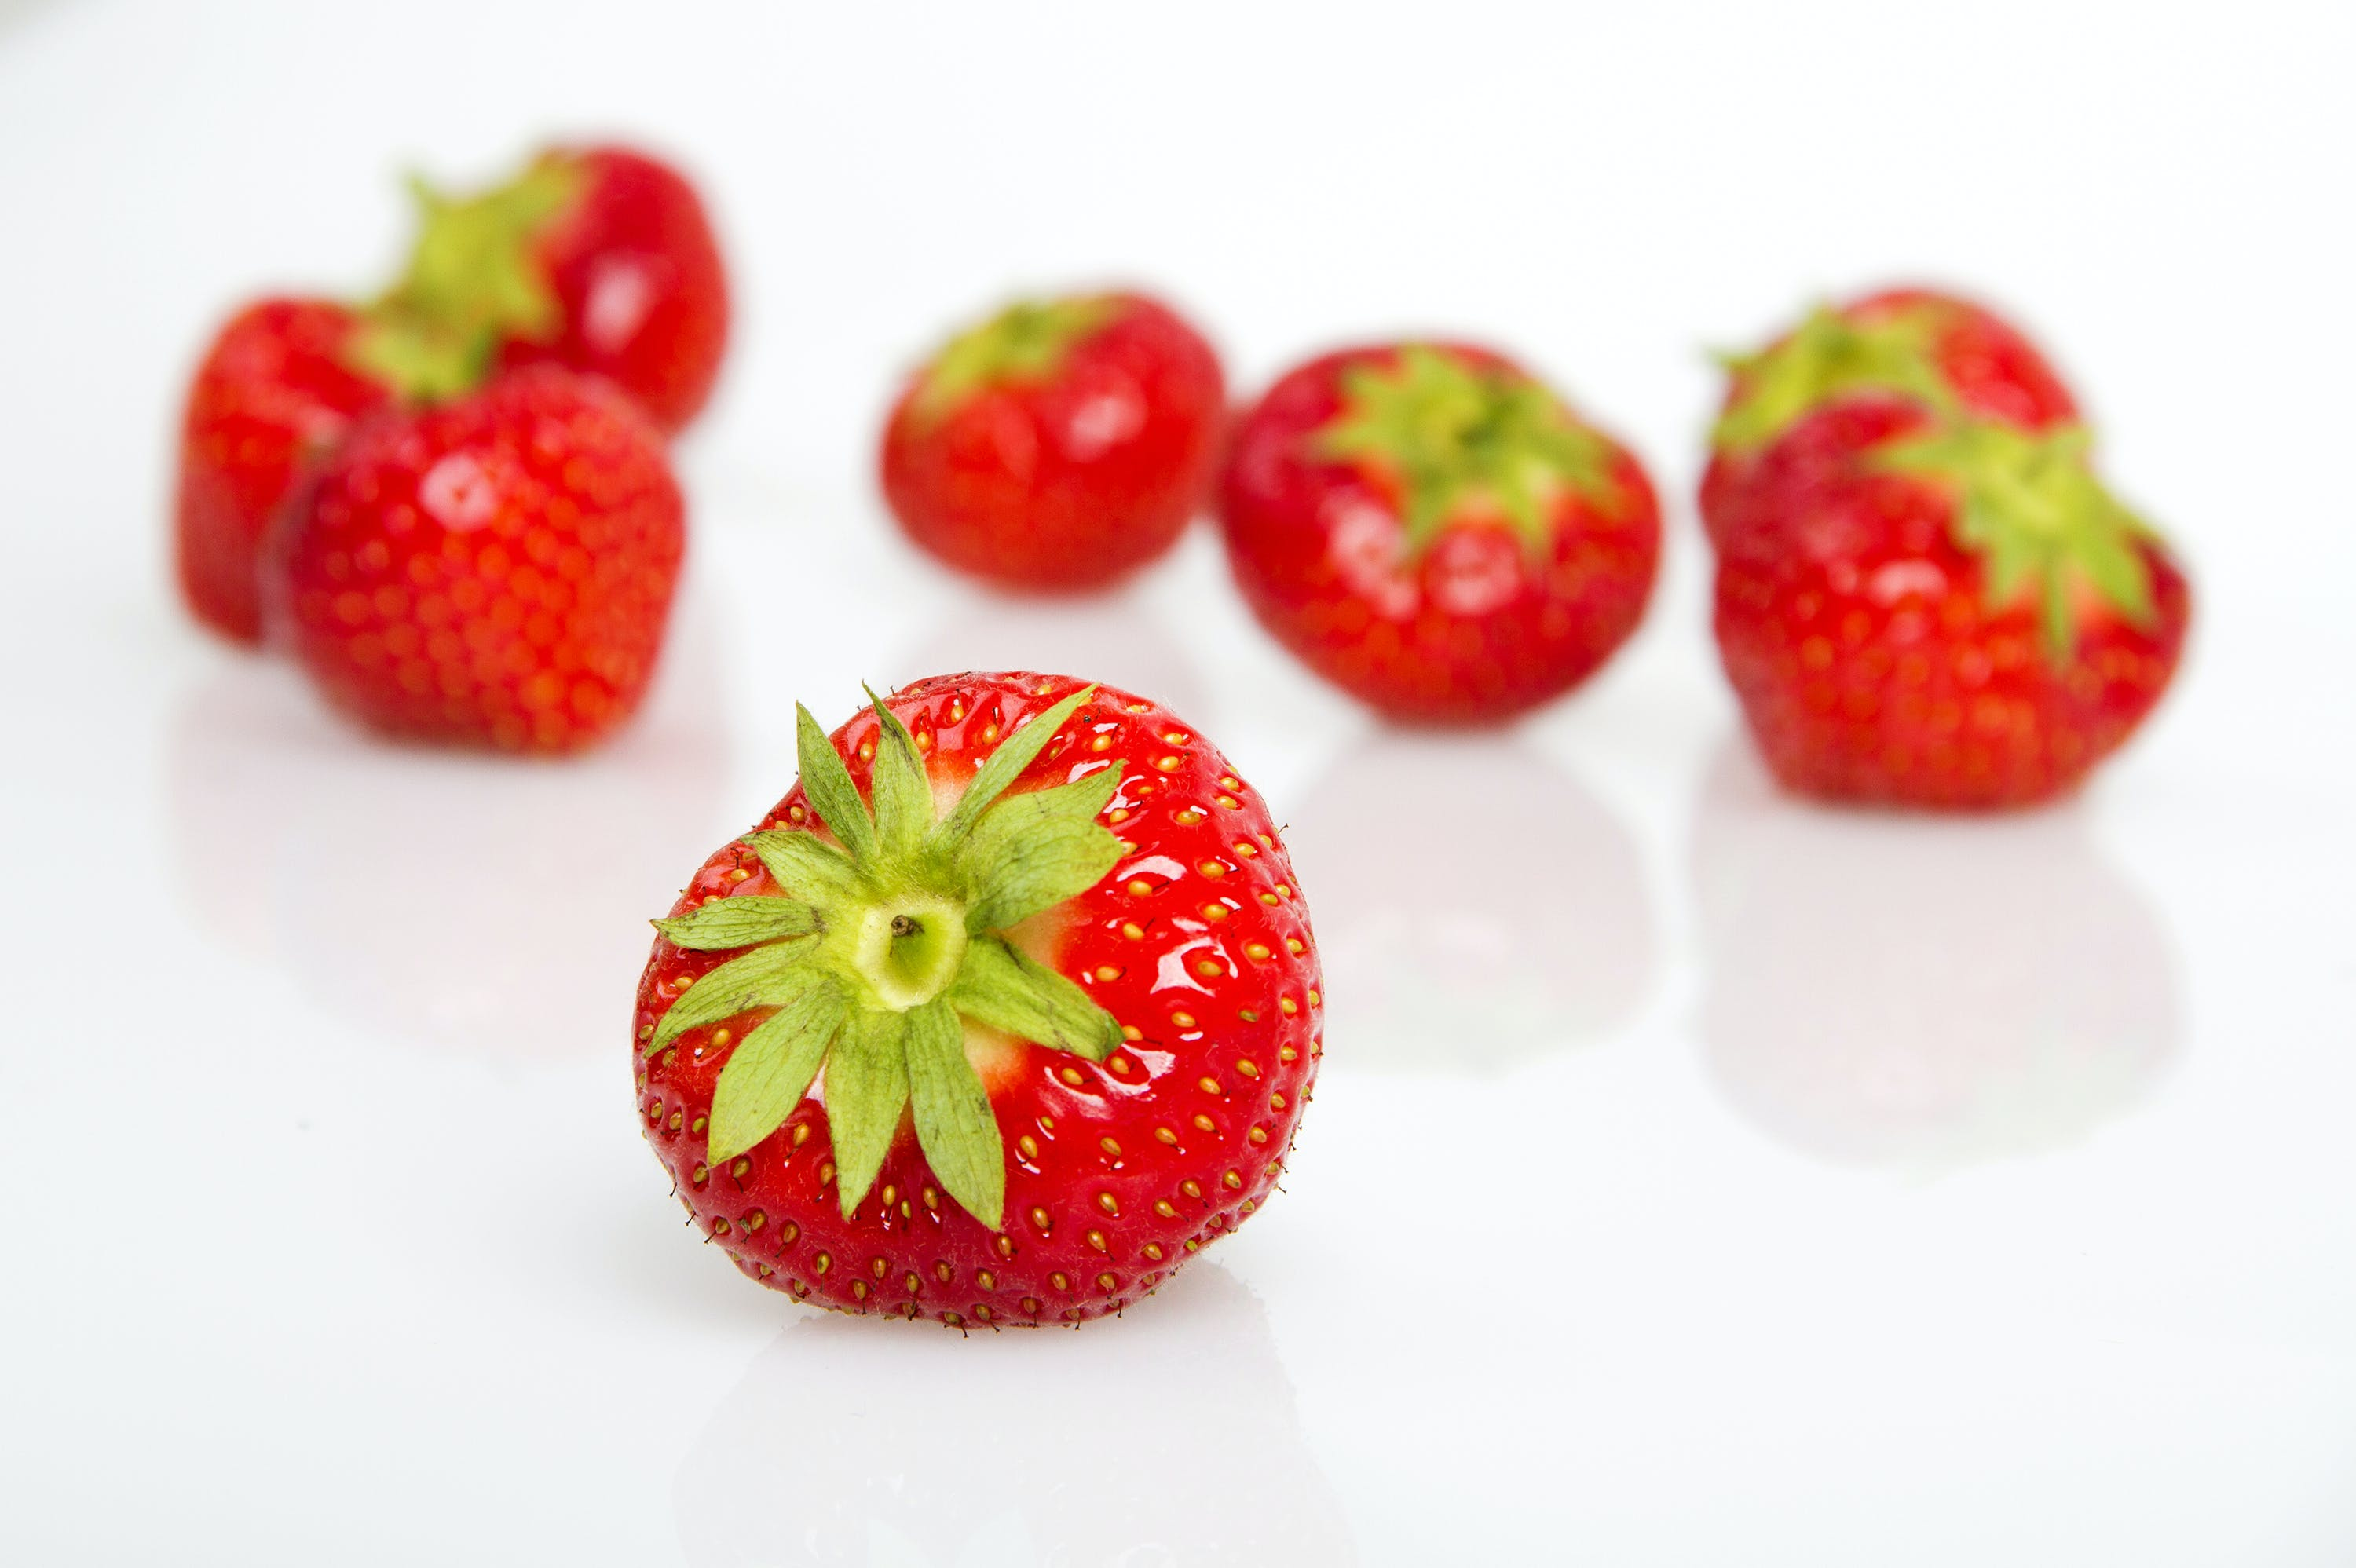 Bunch of Strawberries on White Surface